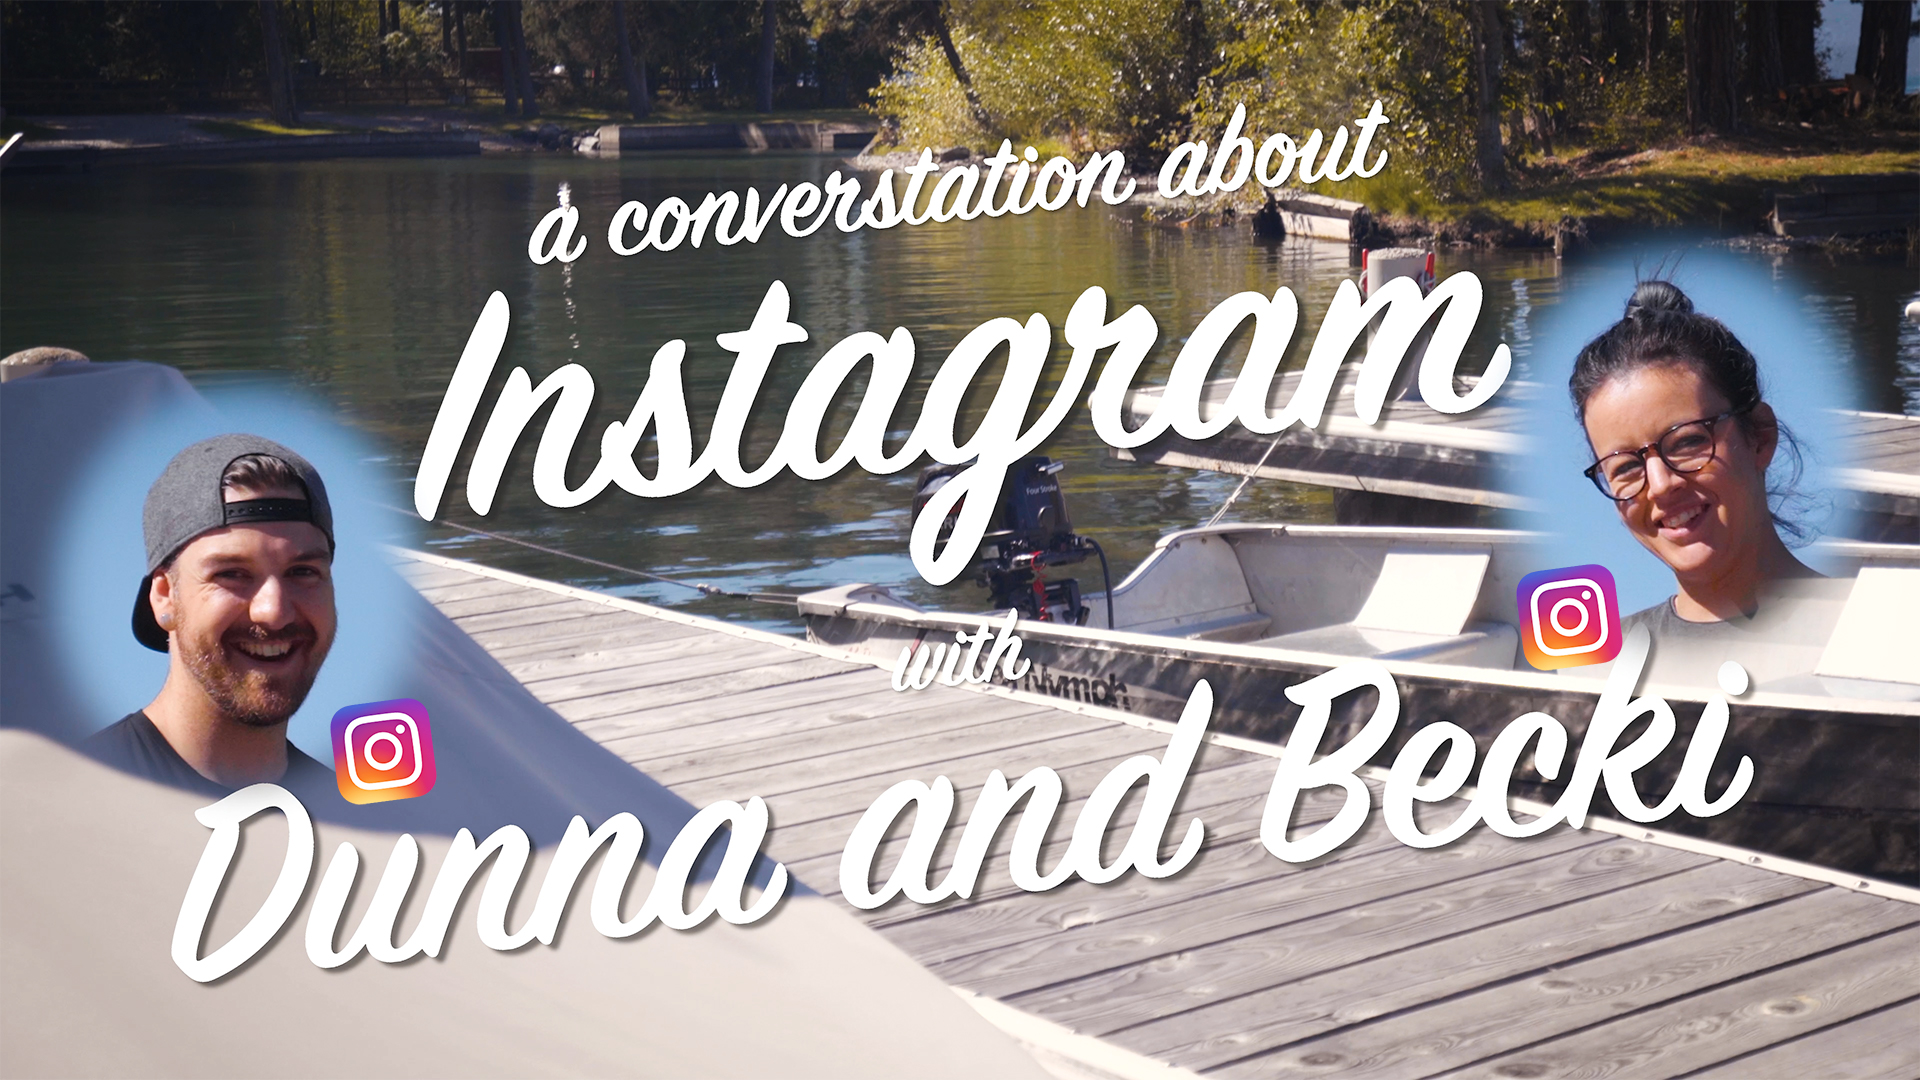 Does the Instagram Grid Matter? A Conversation With Dunna and Becki!